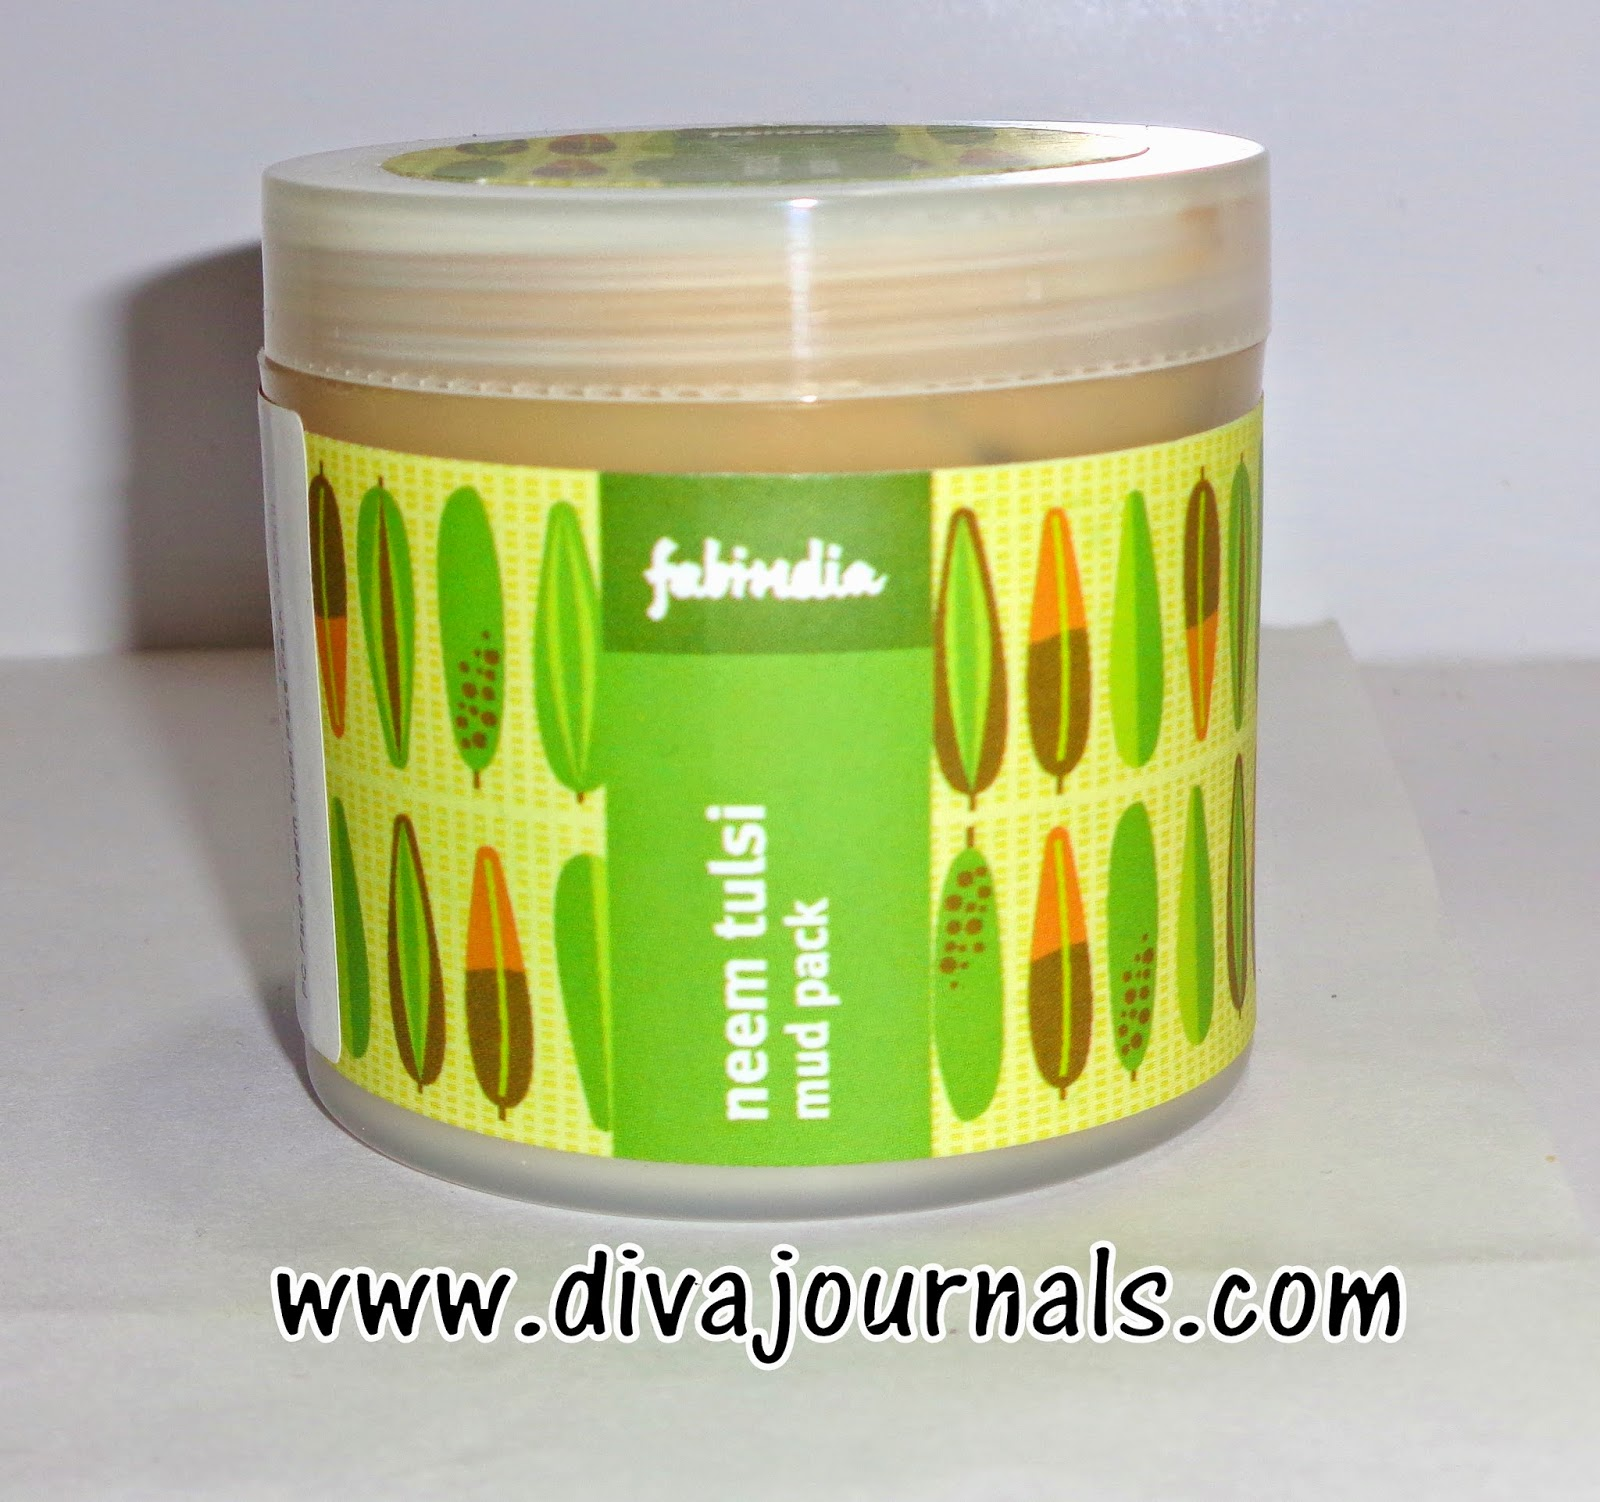 Fabindia Neem Tulsi Face Pack Review